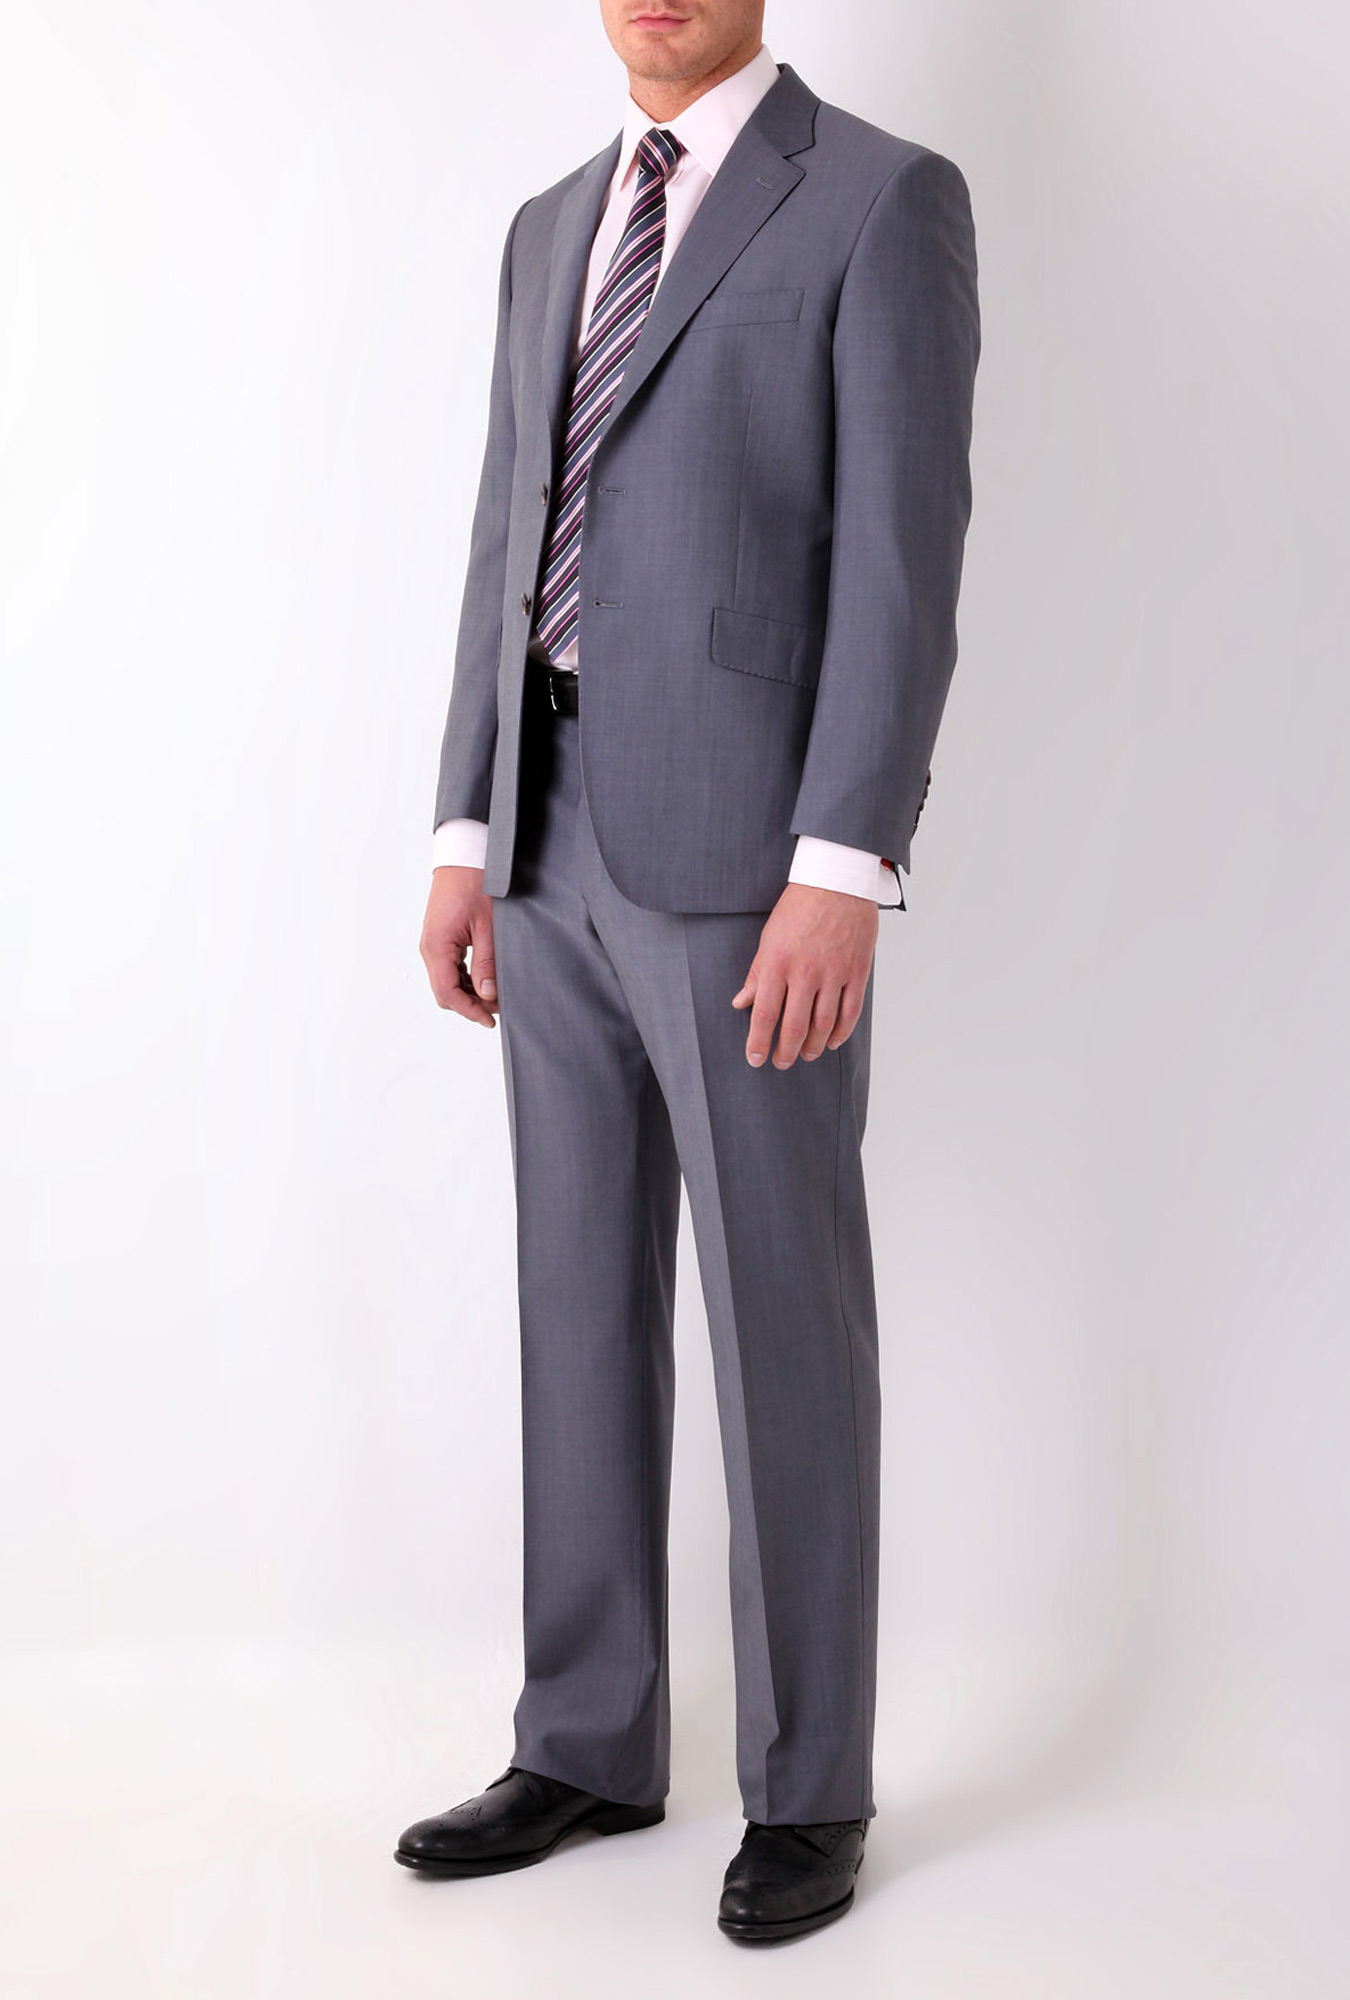 Paul Smith Travel Suit